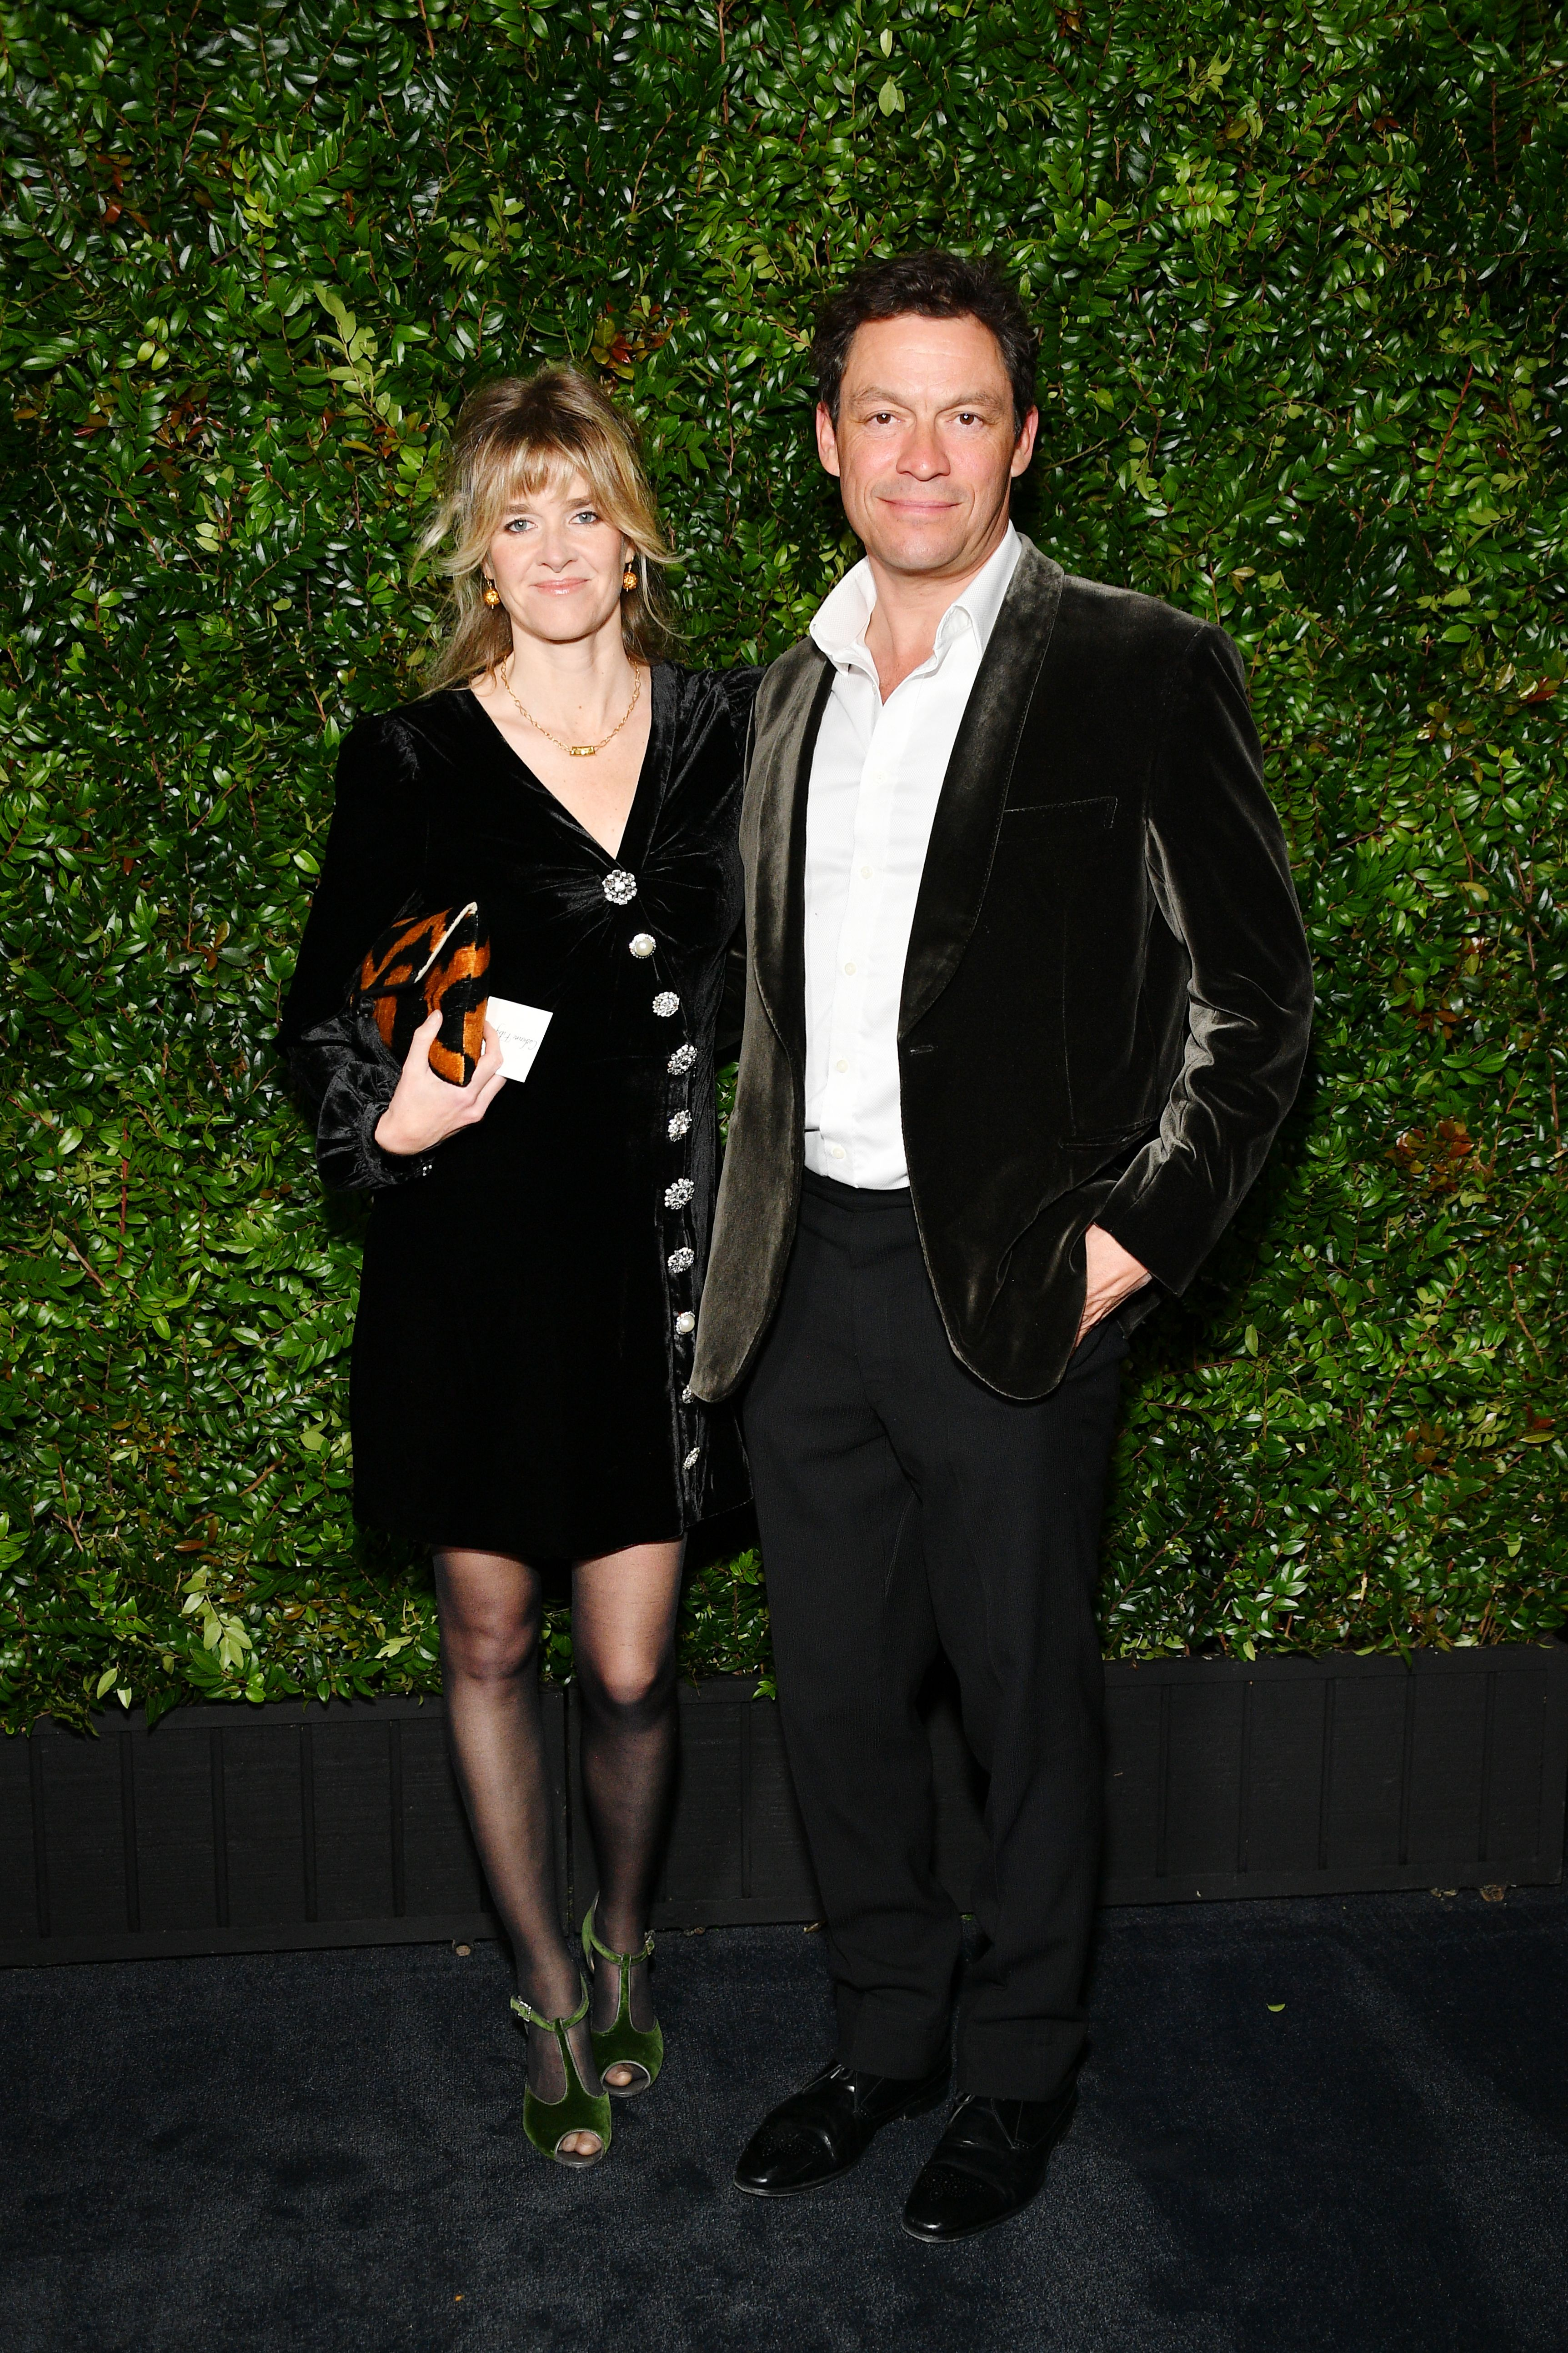 Dominic West and Catherine Fitzgerald at the Chanel And Charles Finch Pre-Oscar Awards Dinner in 2019 in Hollywood | Source: Getty Images